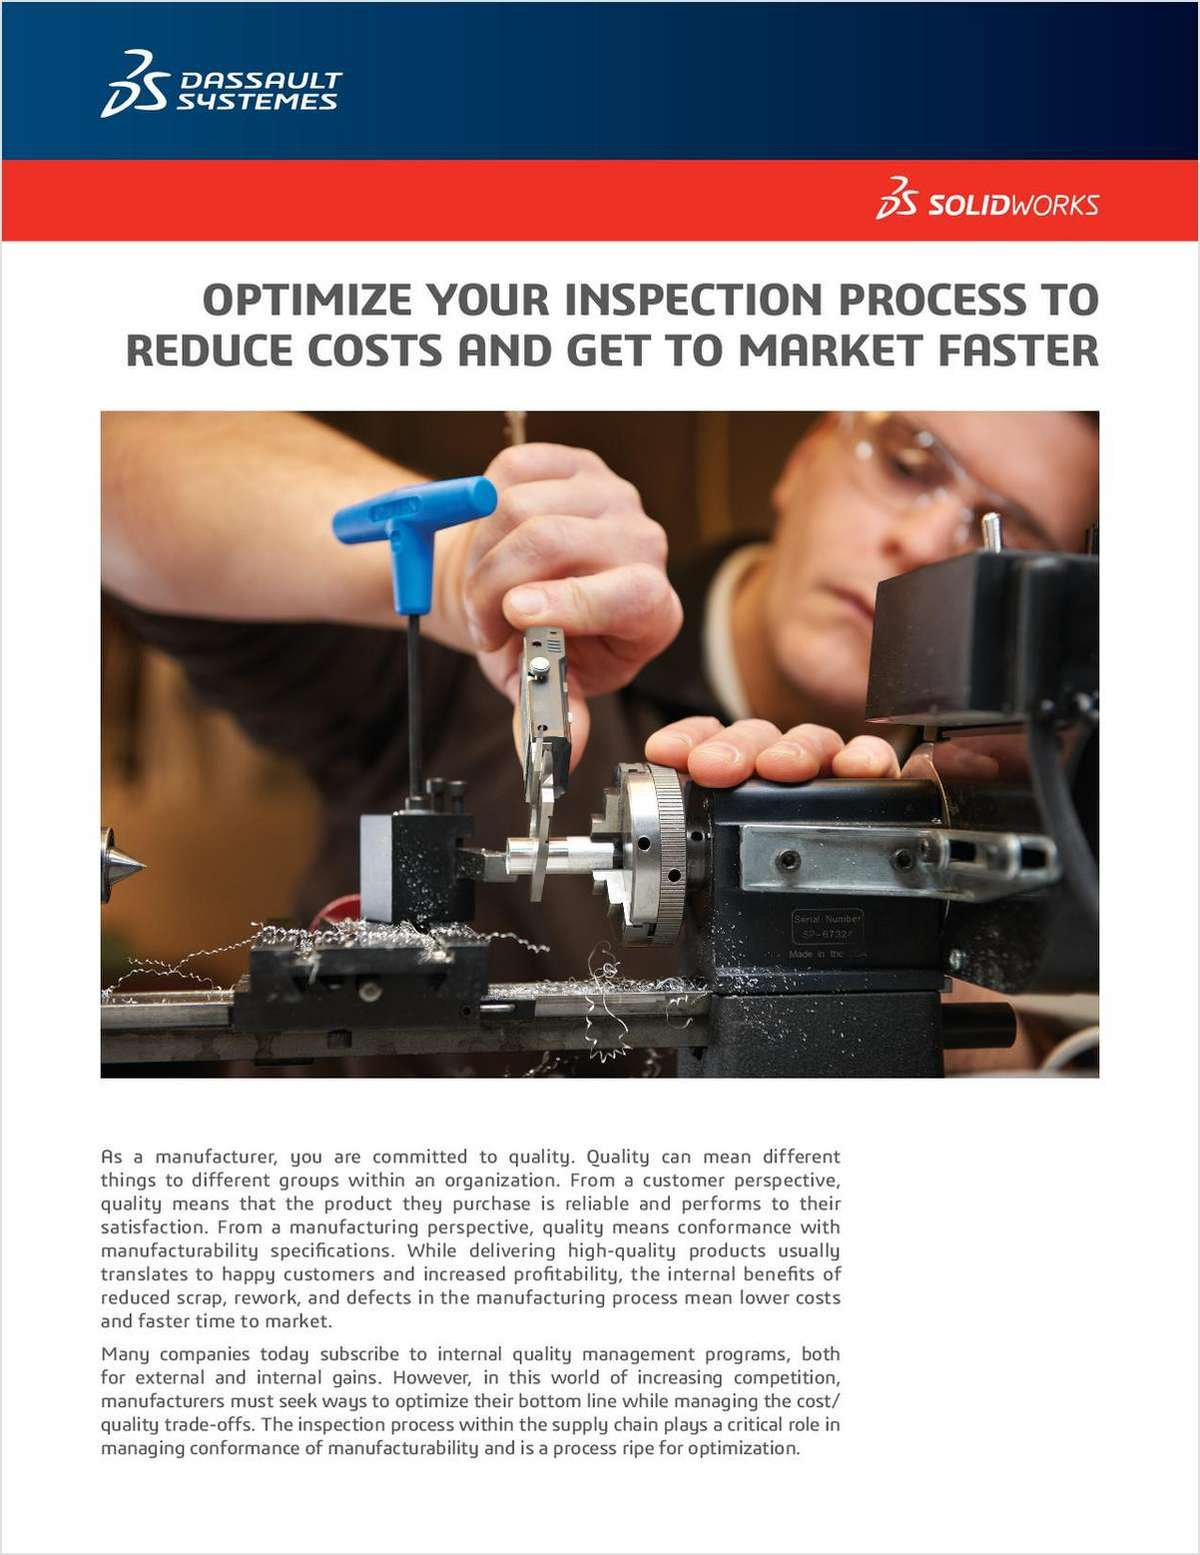 SOLIDWORKS® Inspection Software Improves the Inspection Process Without Sacrificing Quality